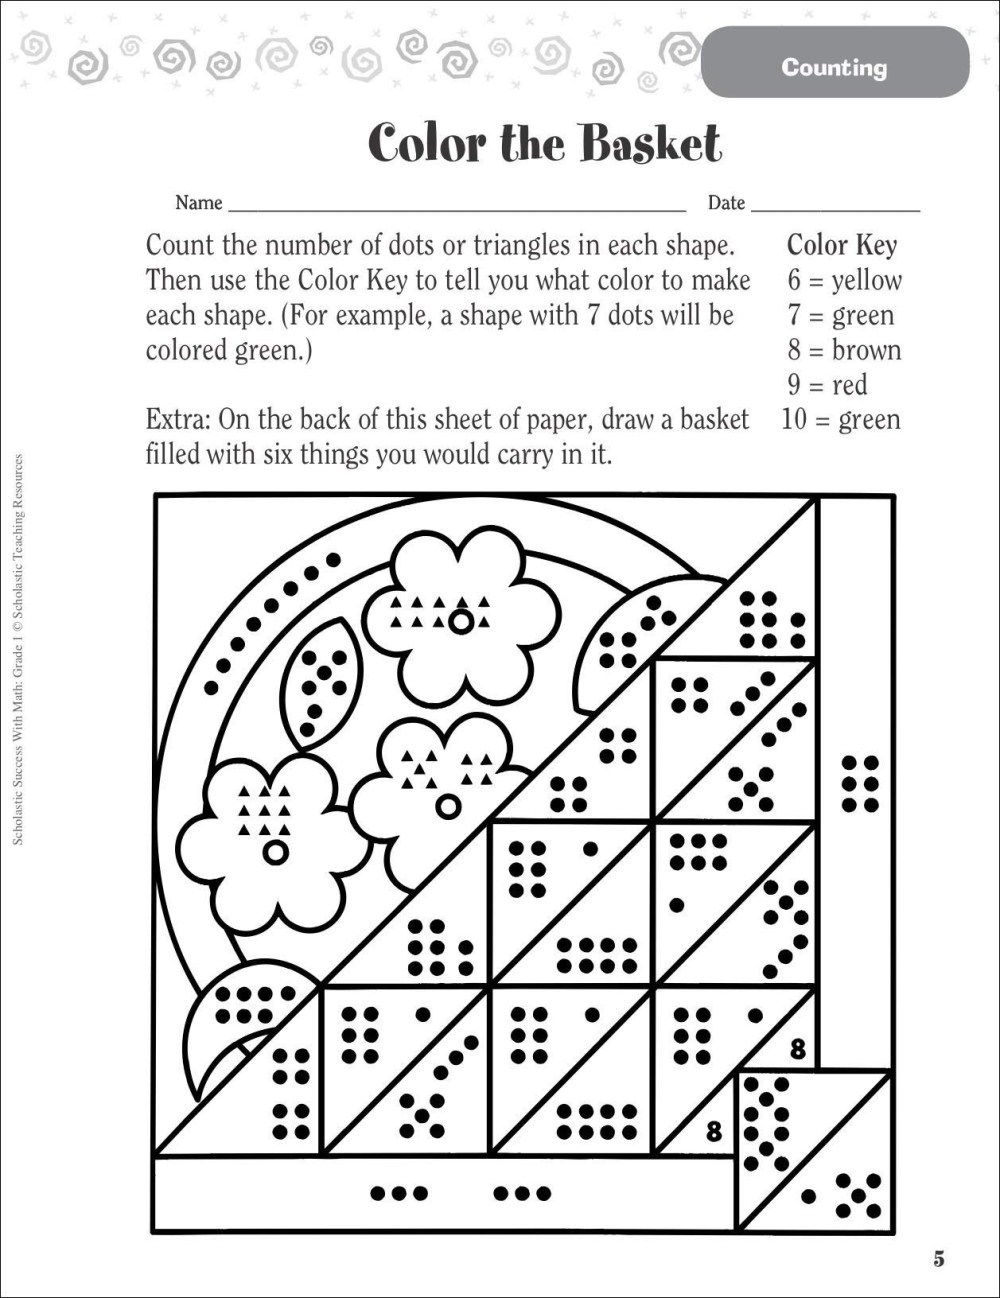 medium resolution of 5 Free Math Worksheets First Grade 1 Subtraction Subtracting 1 Digit From 2  Digit No Regrouping - apocalomegaproductions.com